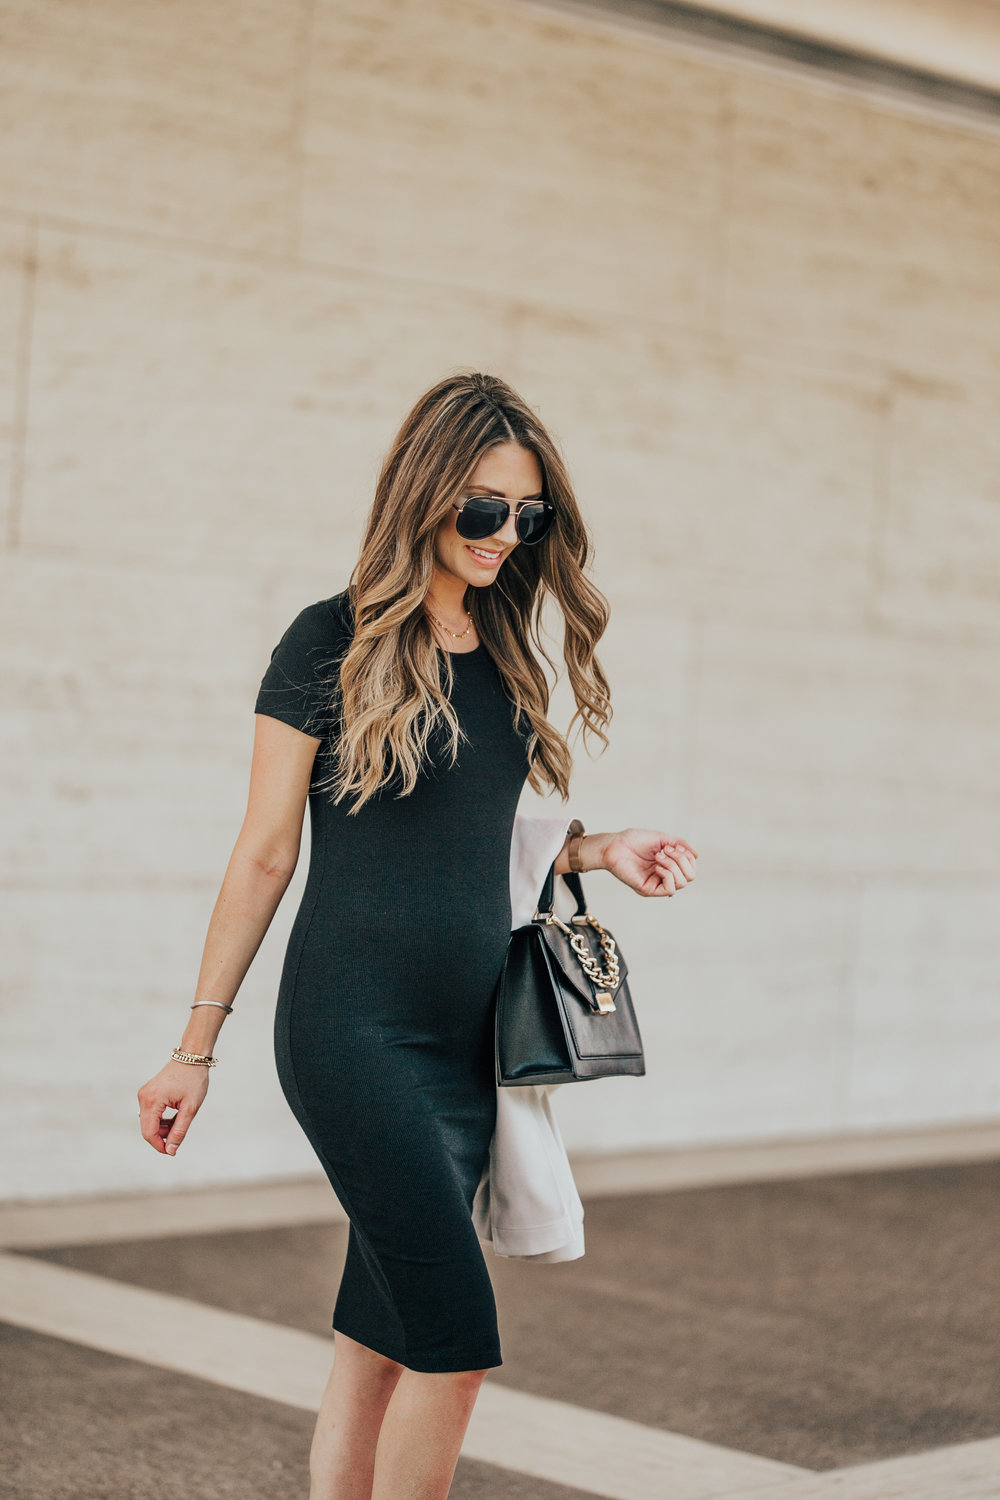 Dressing Up A Basic Black Dress